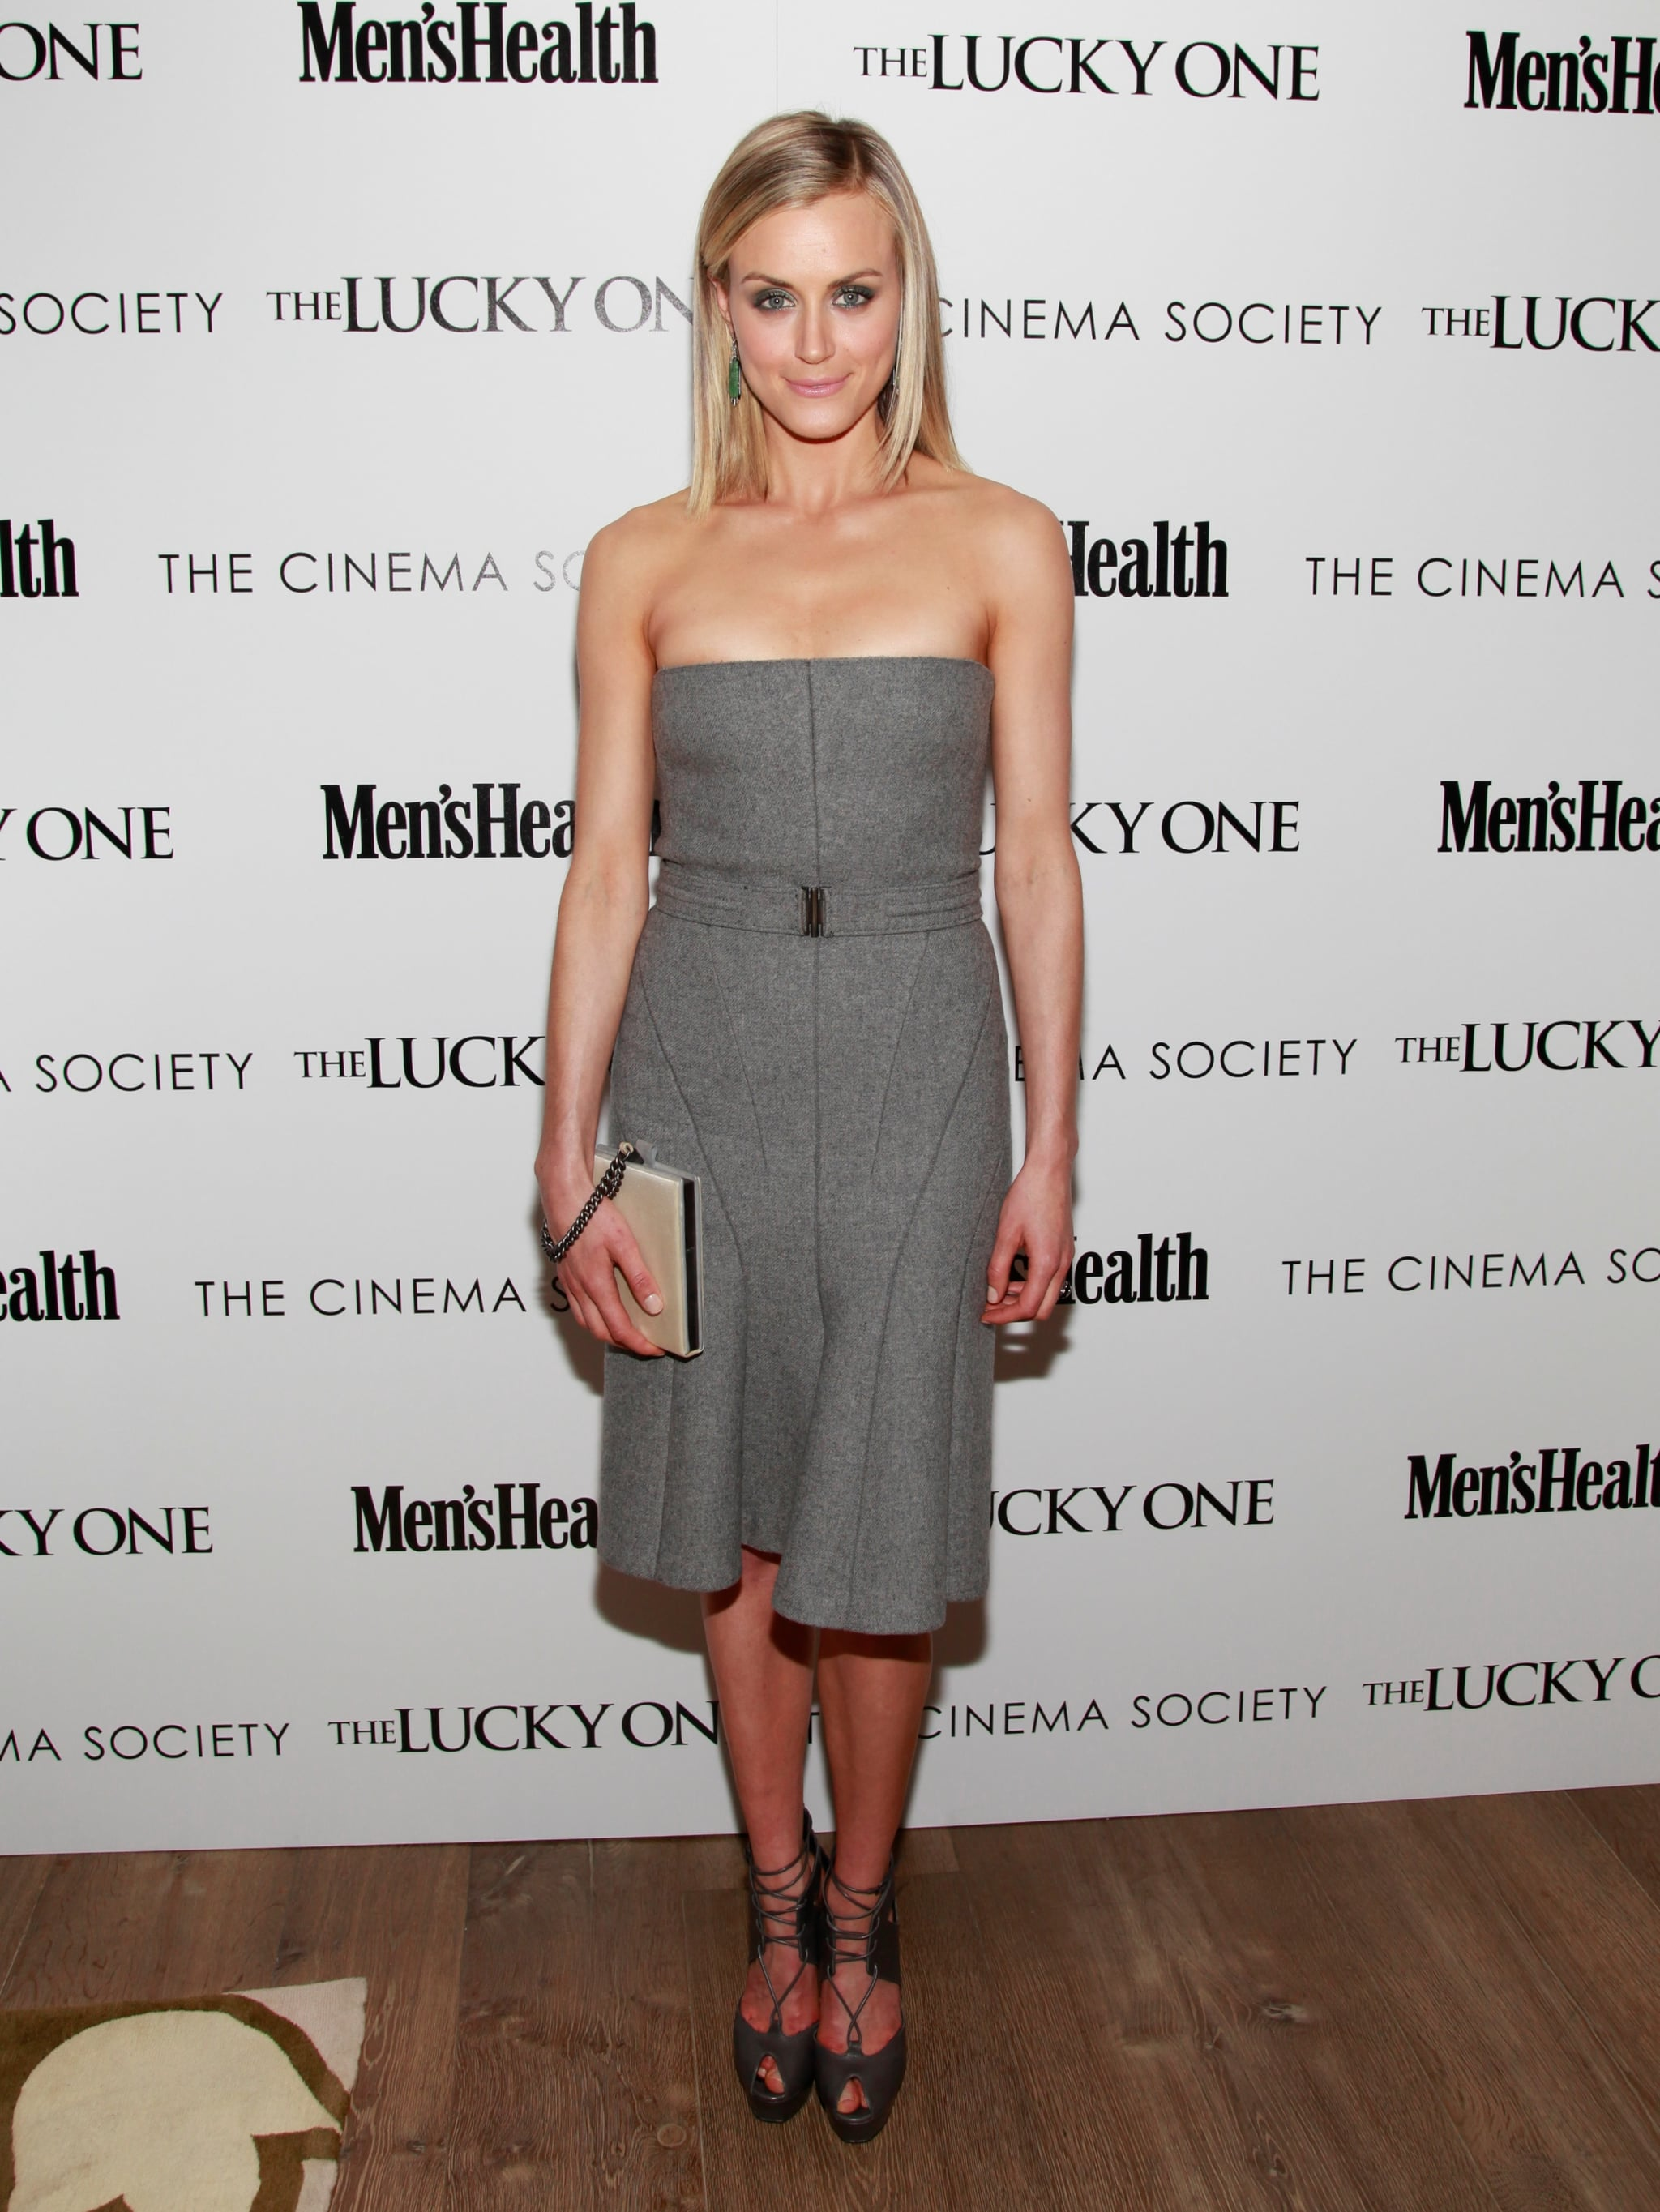 In a polished strapless dress and lace-up heels, Taylor hit the red carpet for a screening of The Lucky One in 2012.